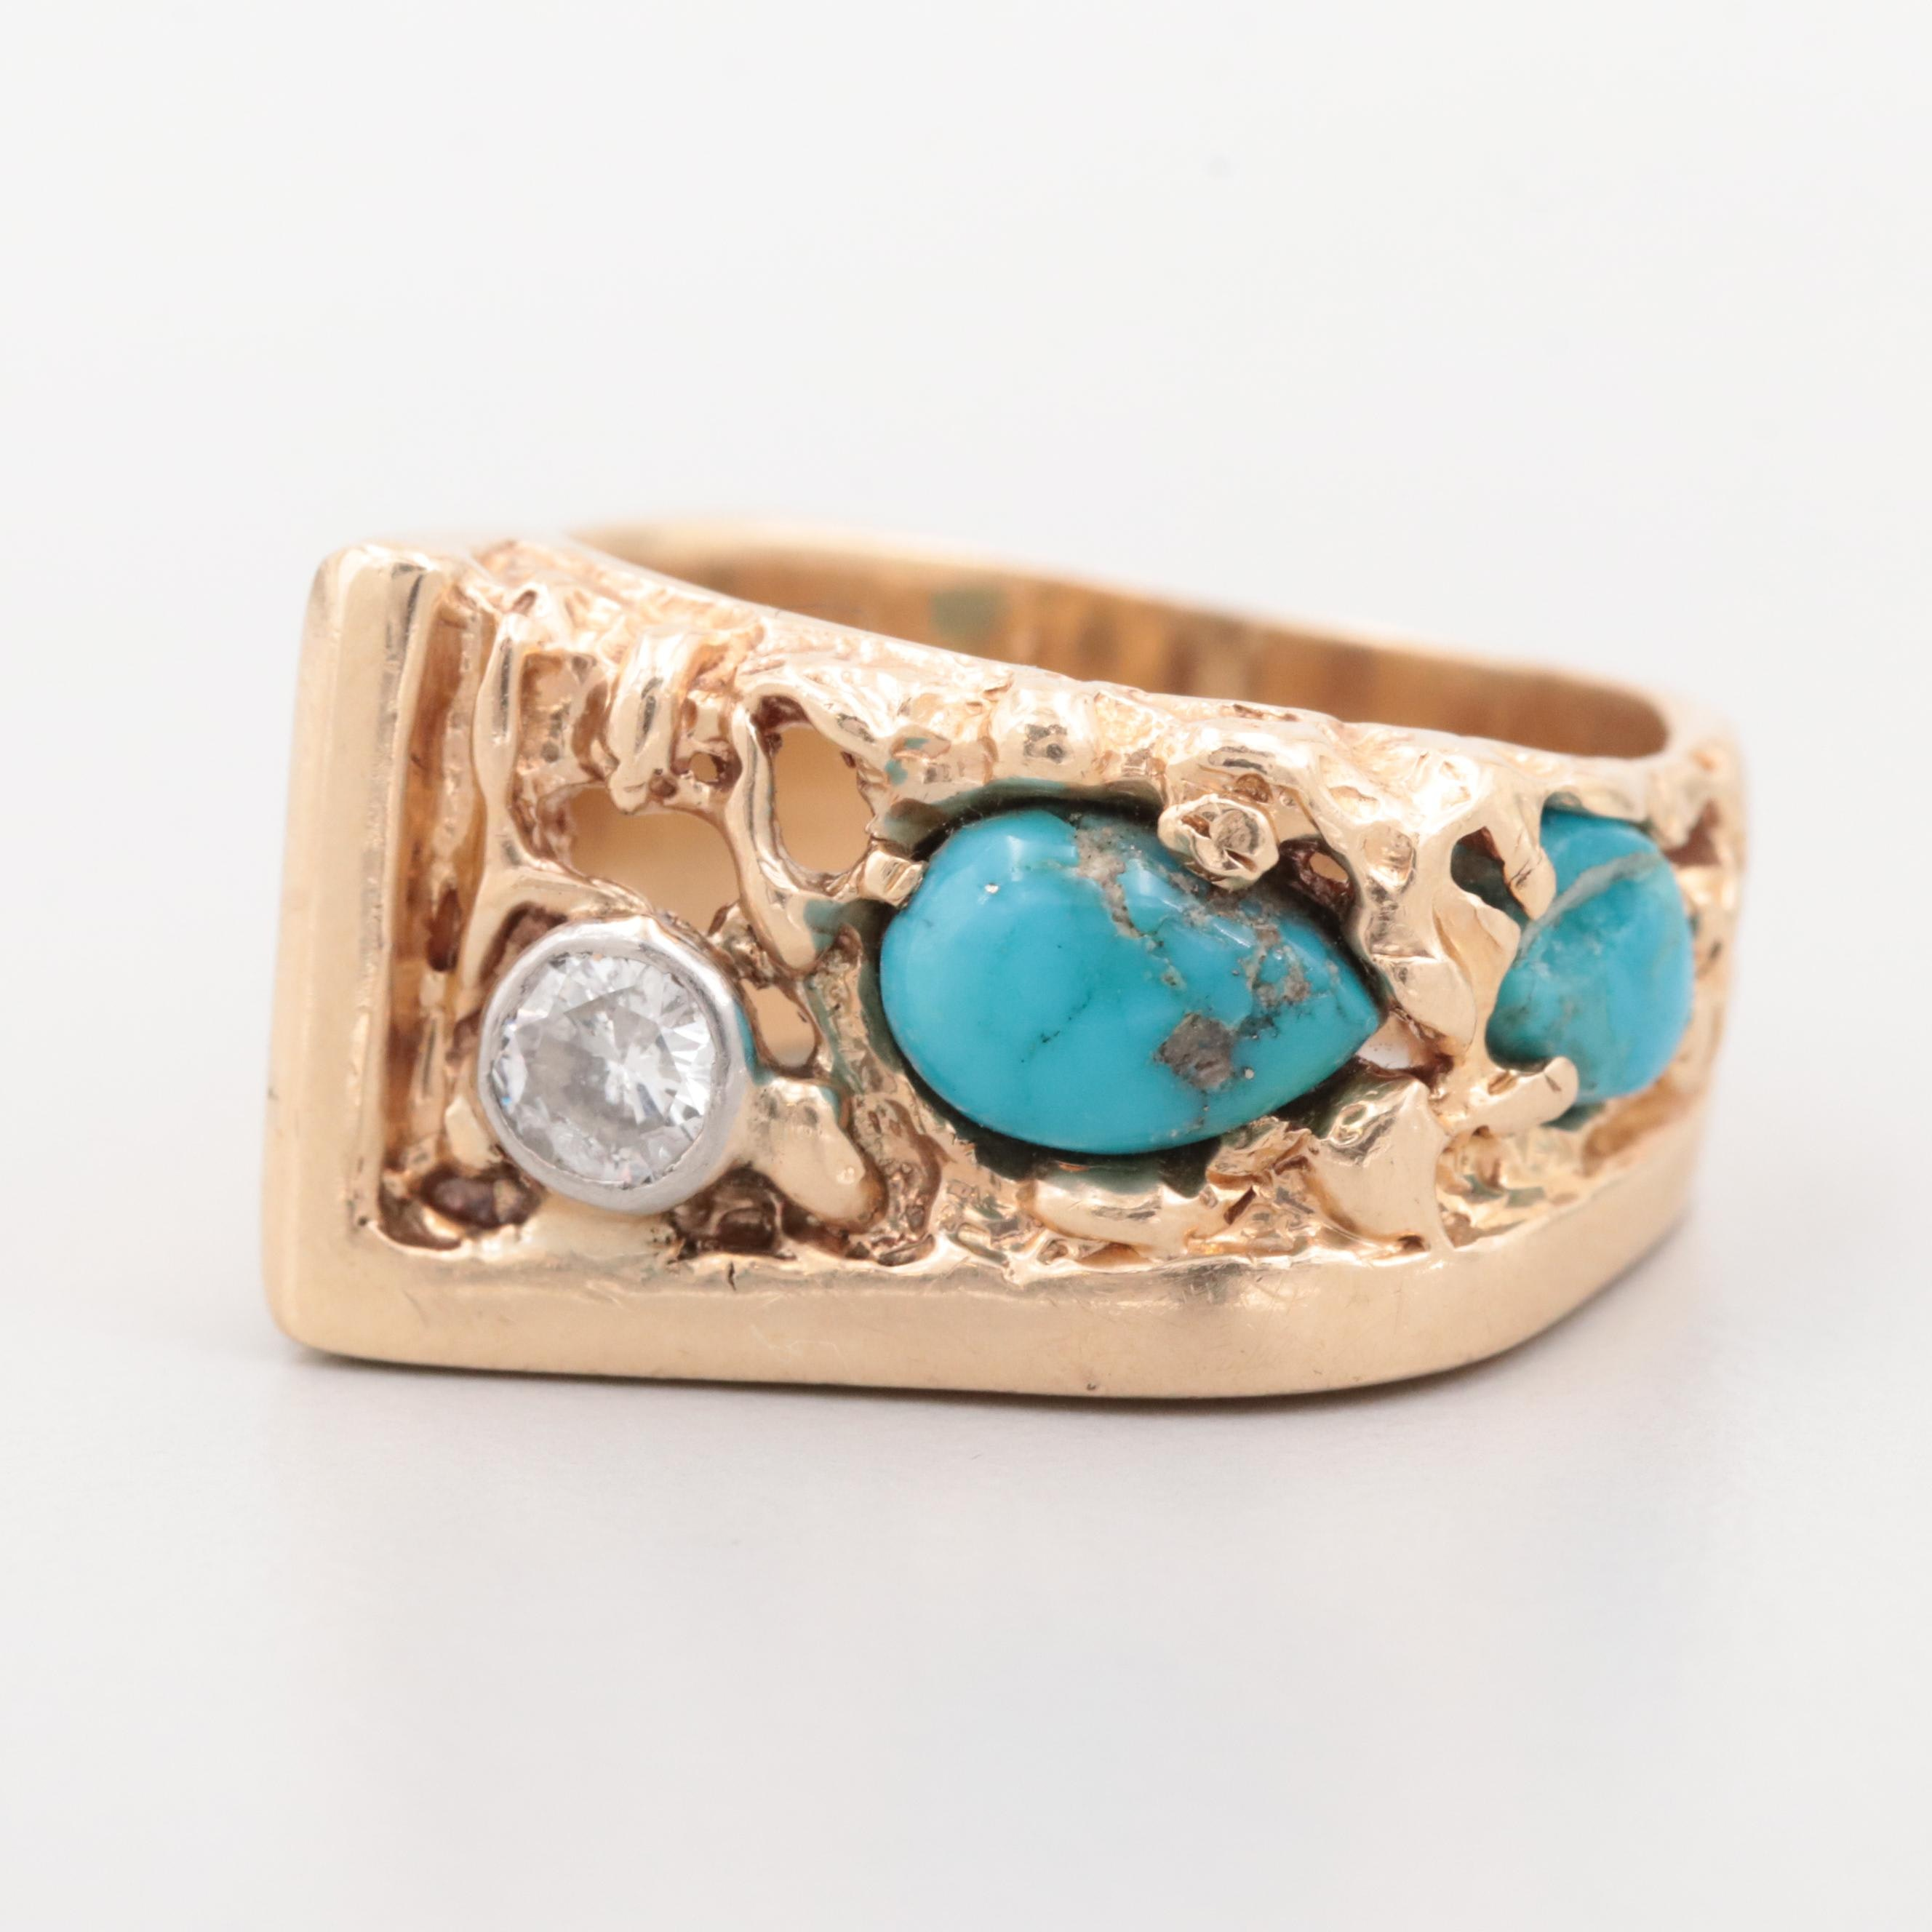 14K Yellow Gold Diamond and Turquoise Ring with Nugget Accents